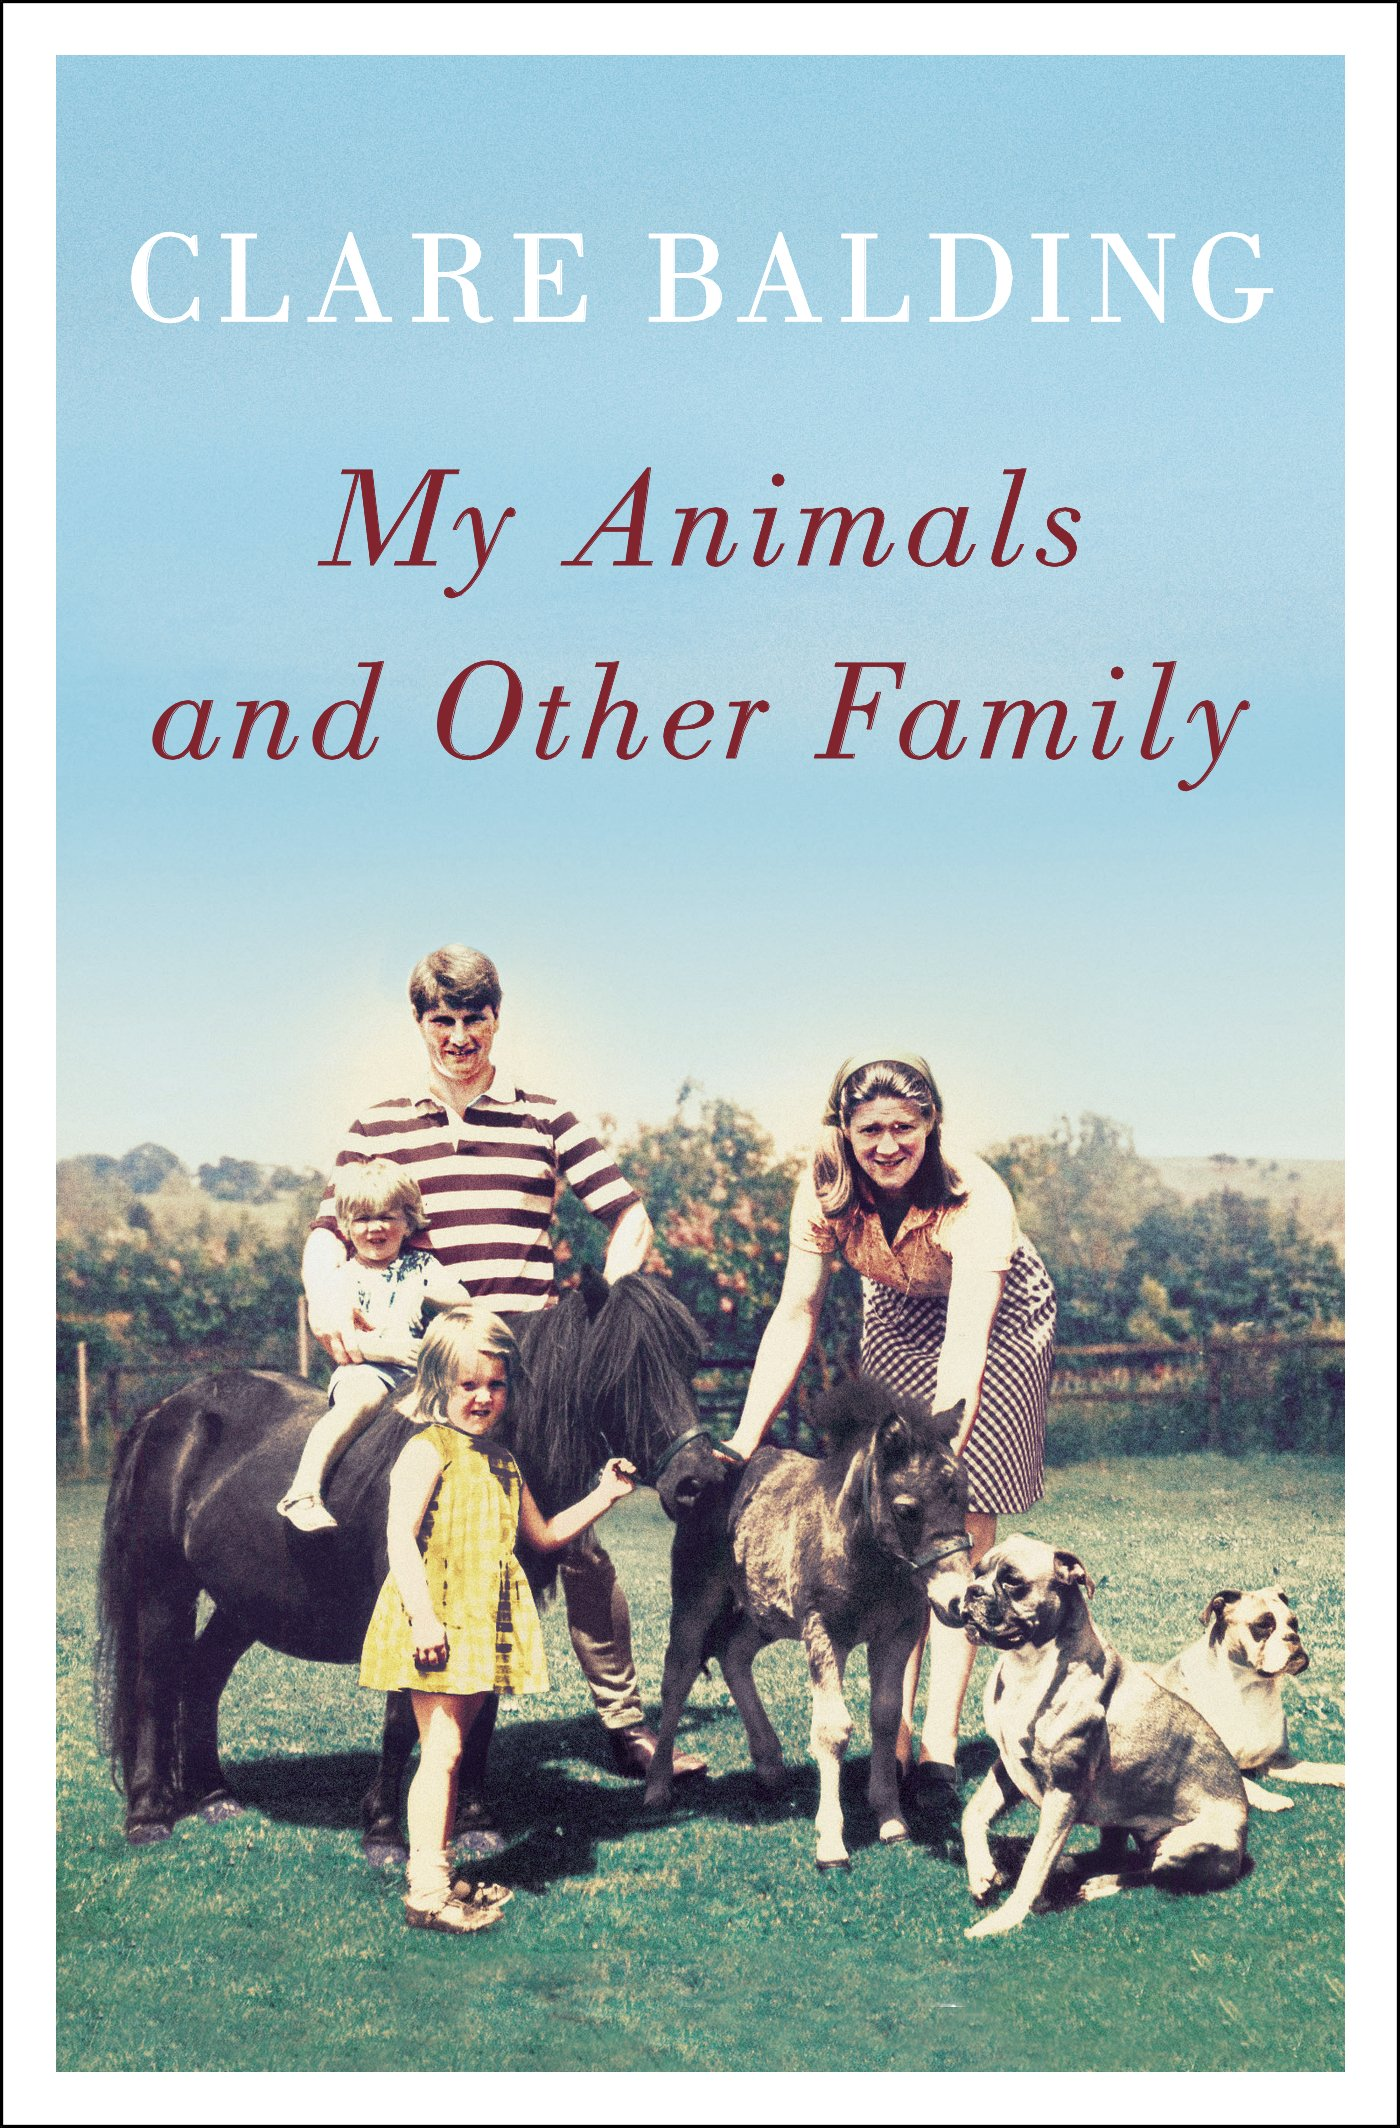 My Animals and Other Family: Clare Balding: 9781594205620: Amazon.com: Books